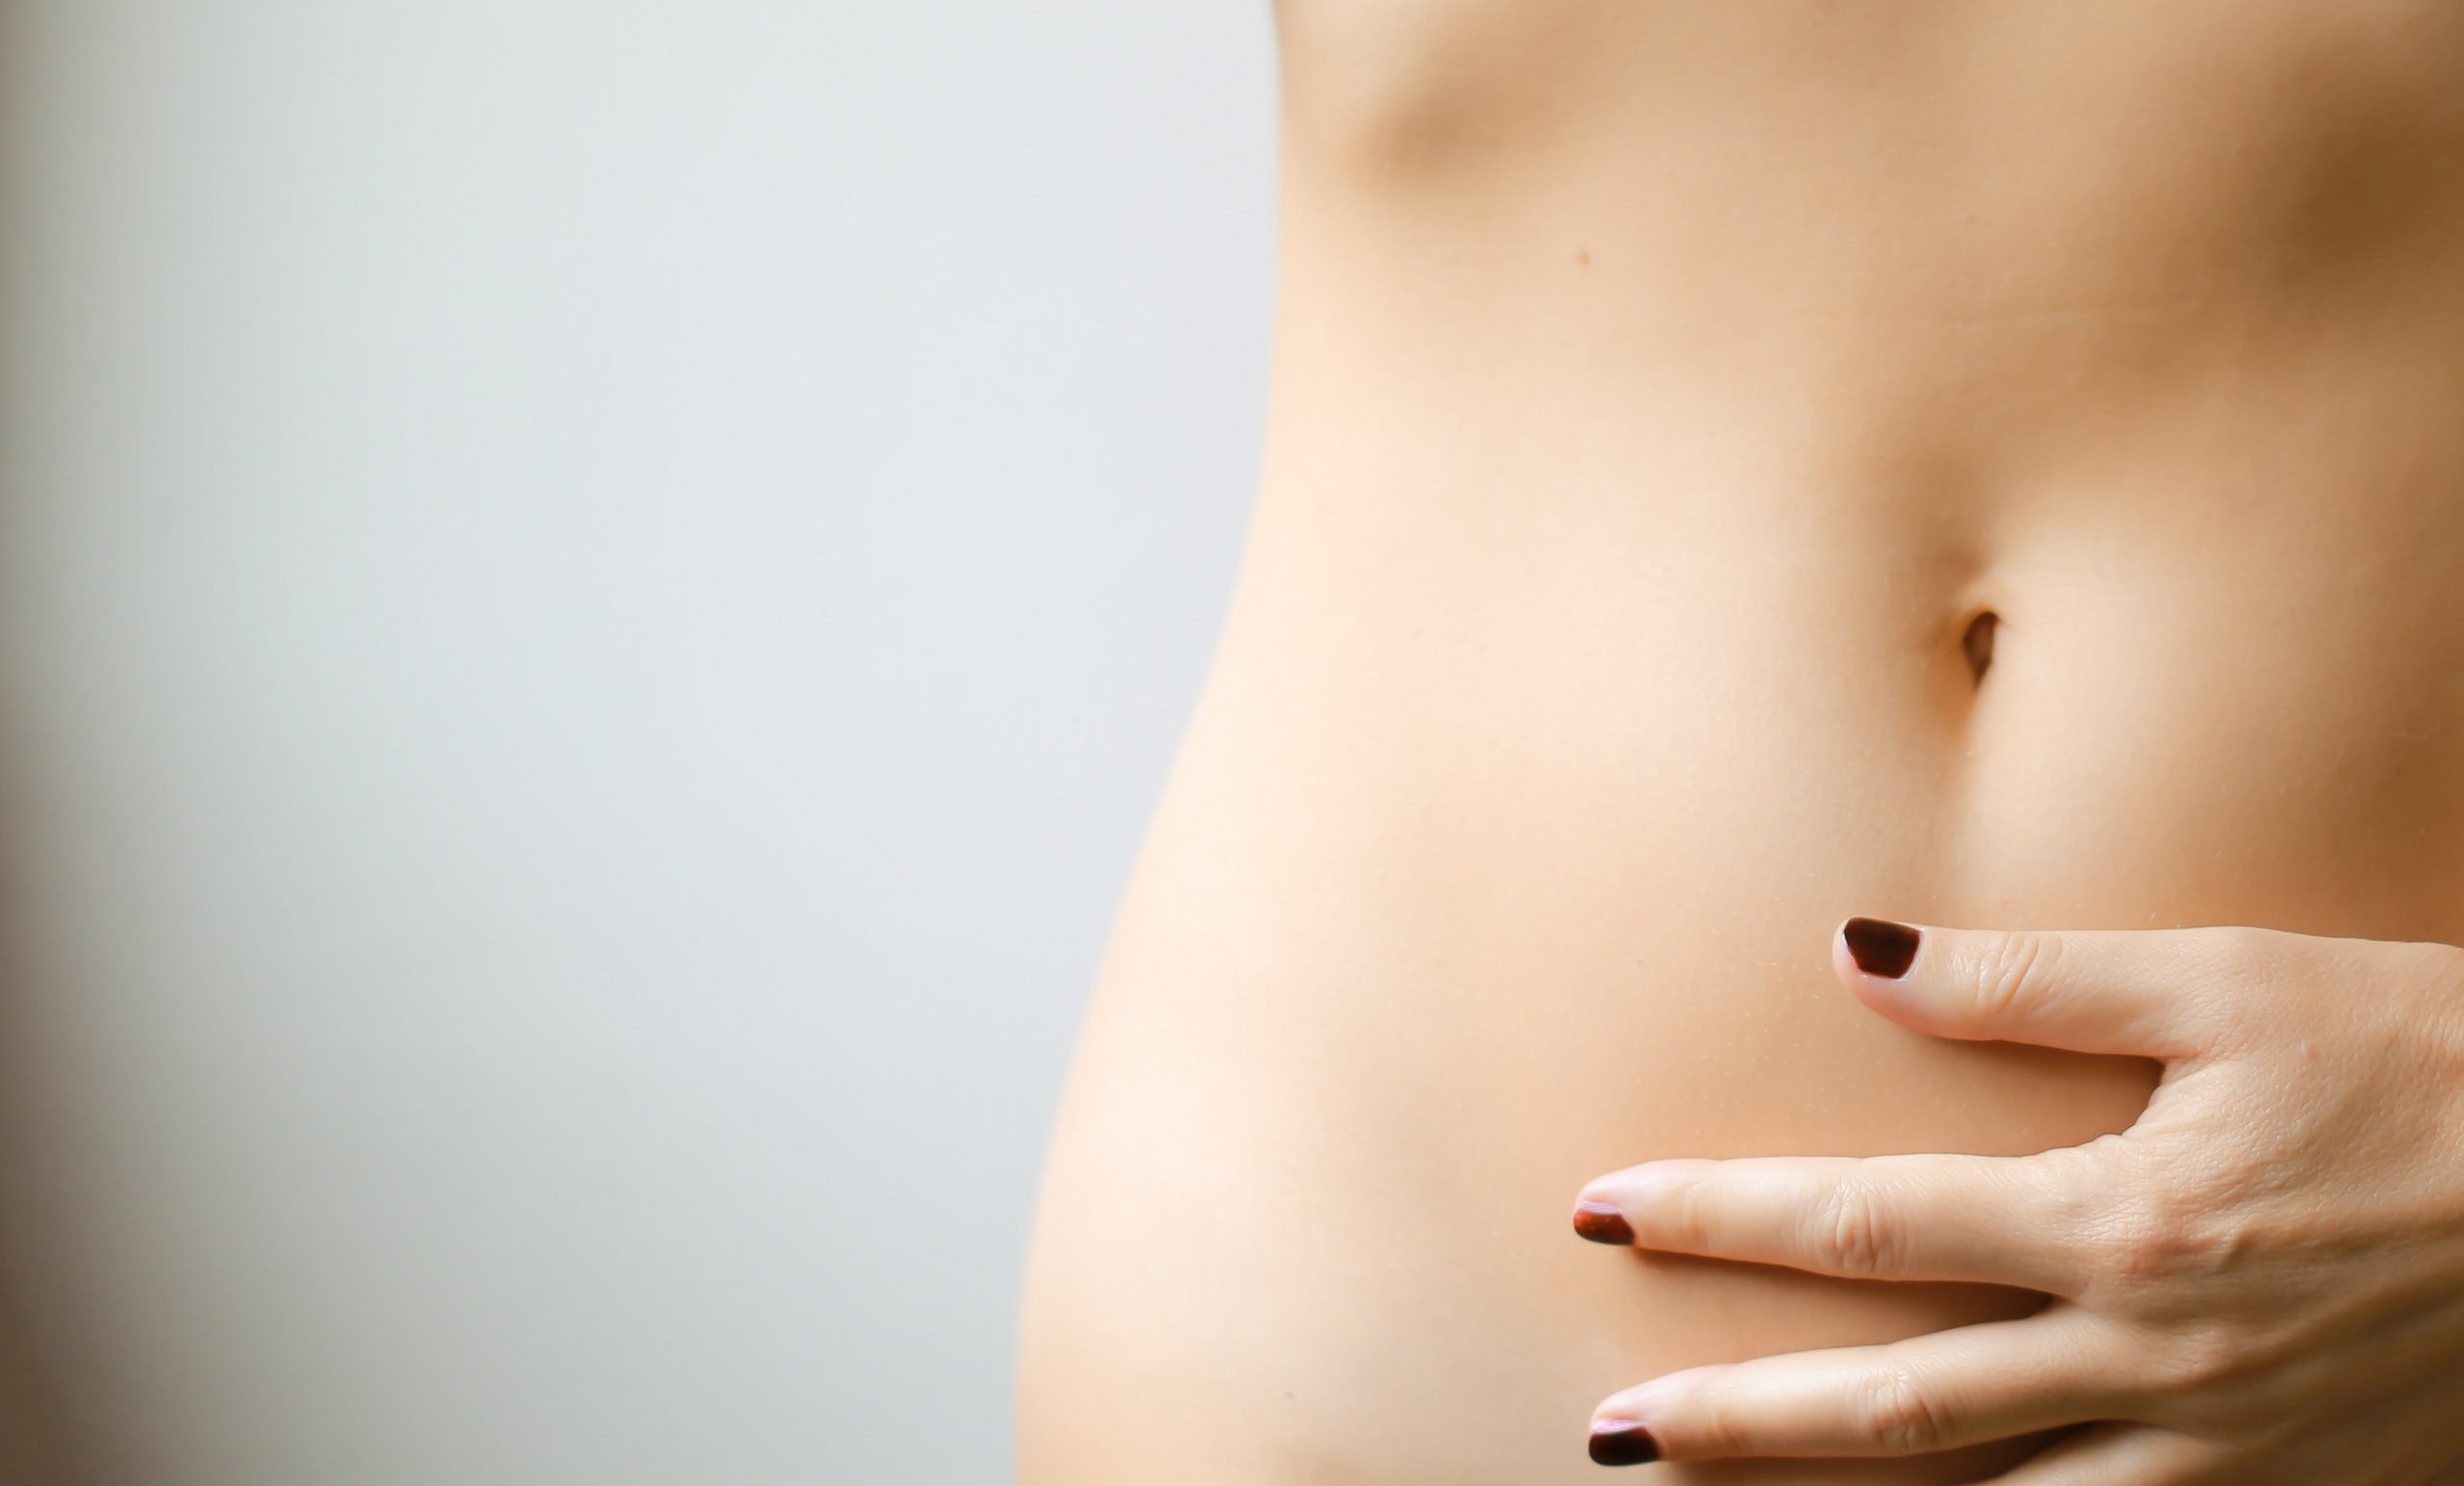 Important Things Women Need to Know About UTIs